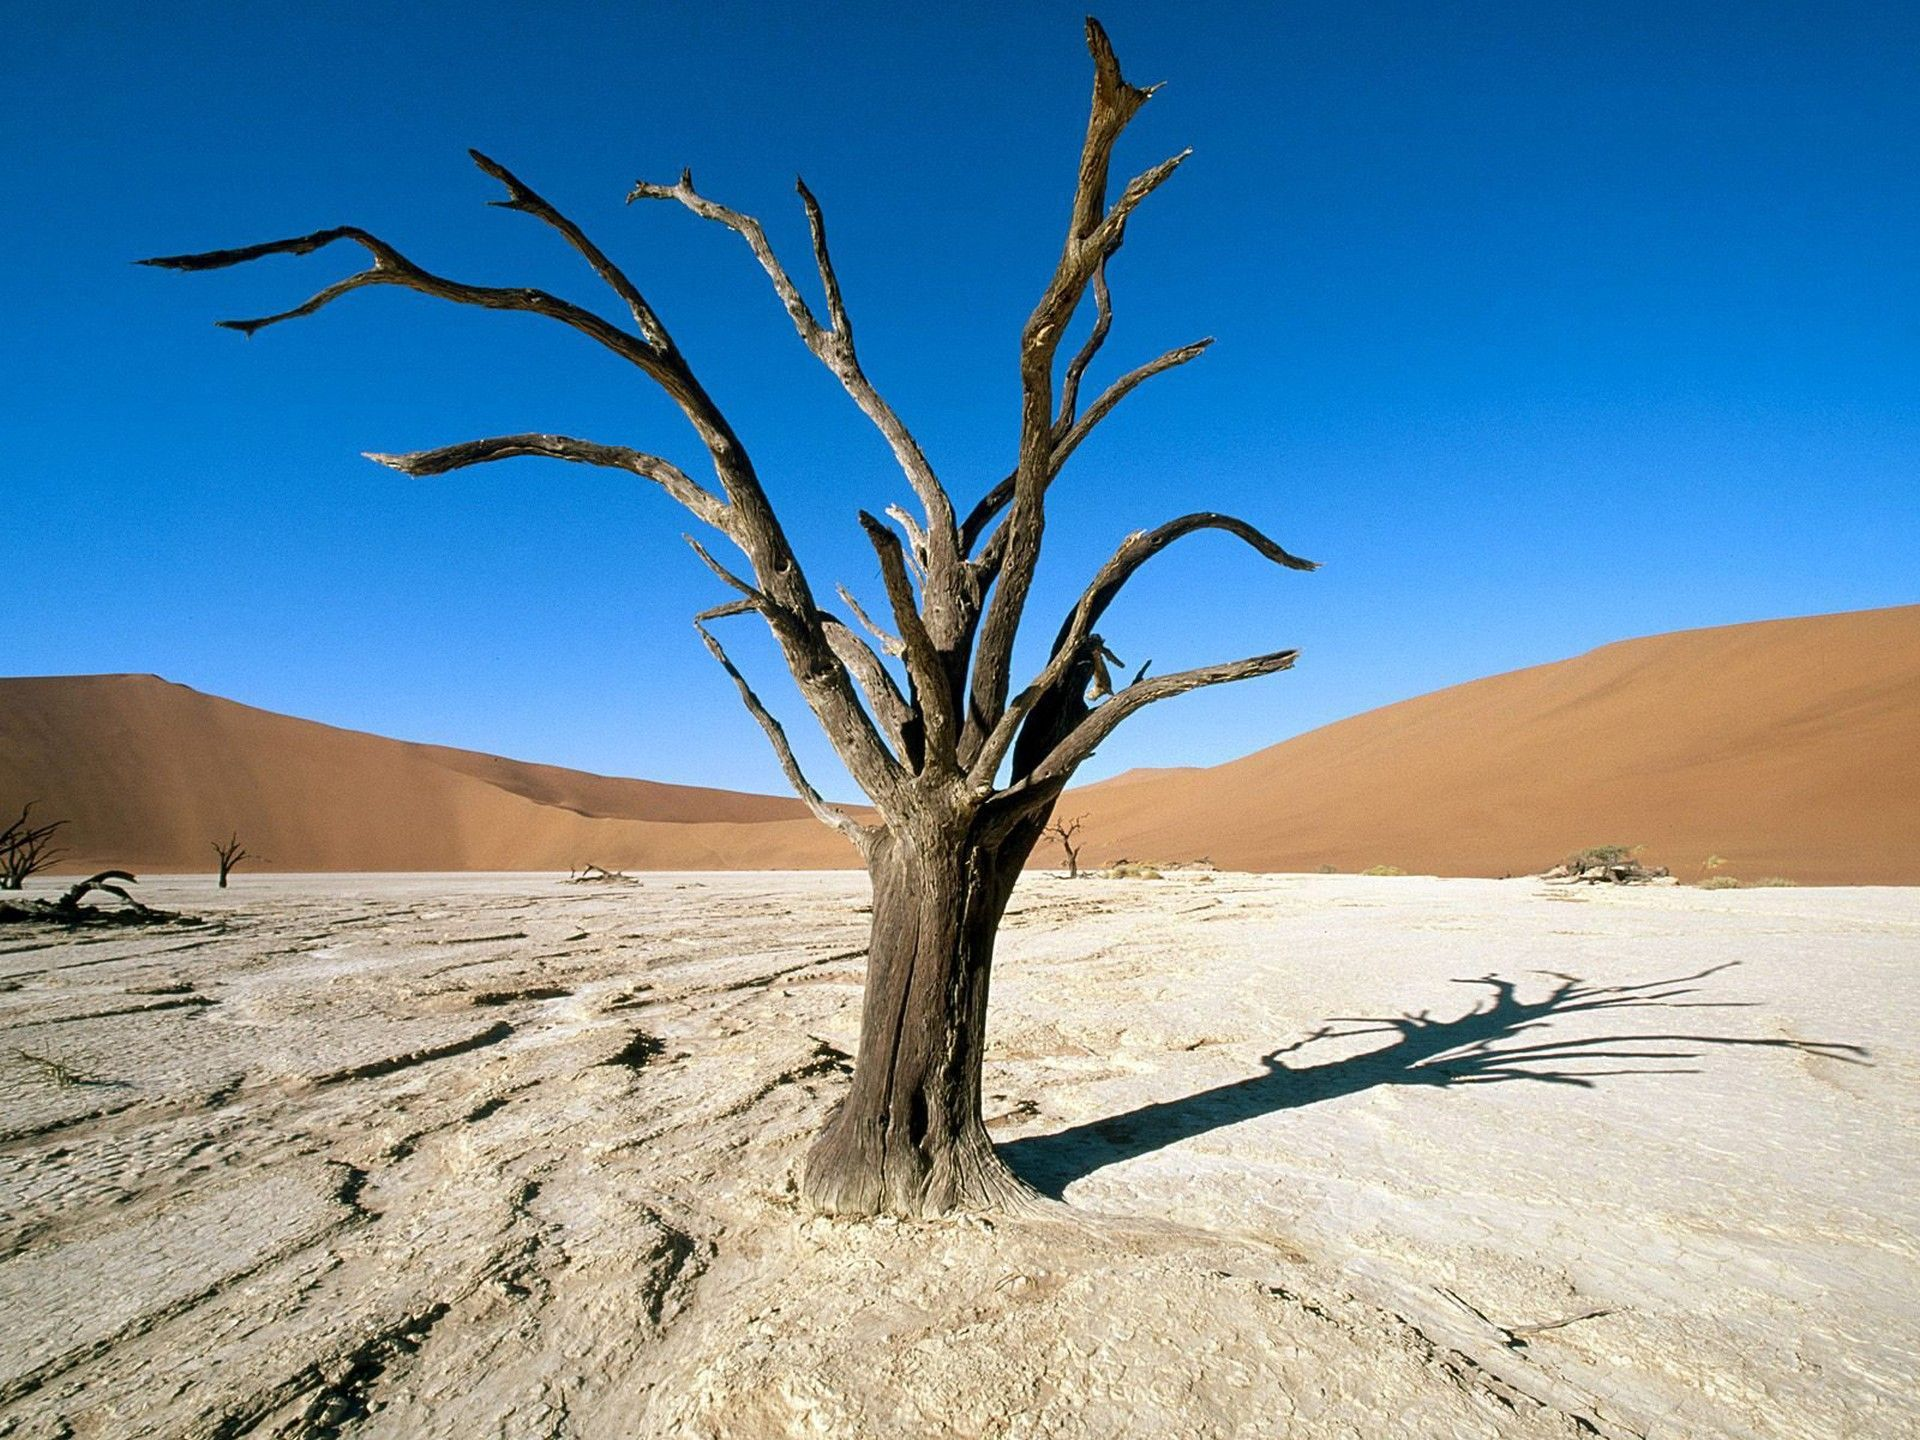 The Namib in Africa